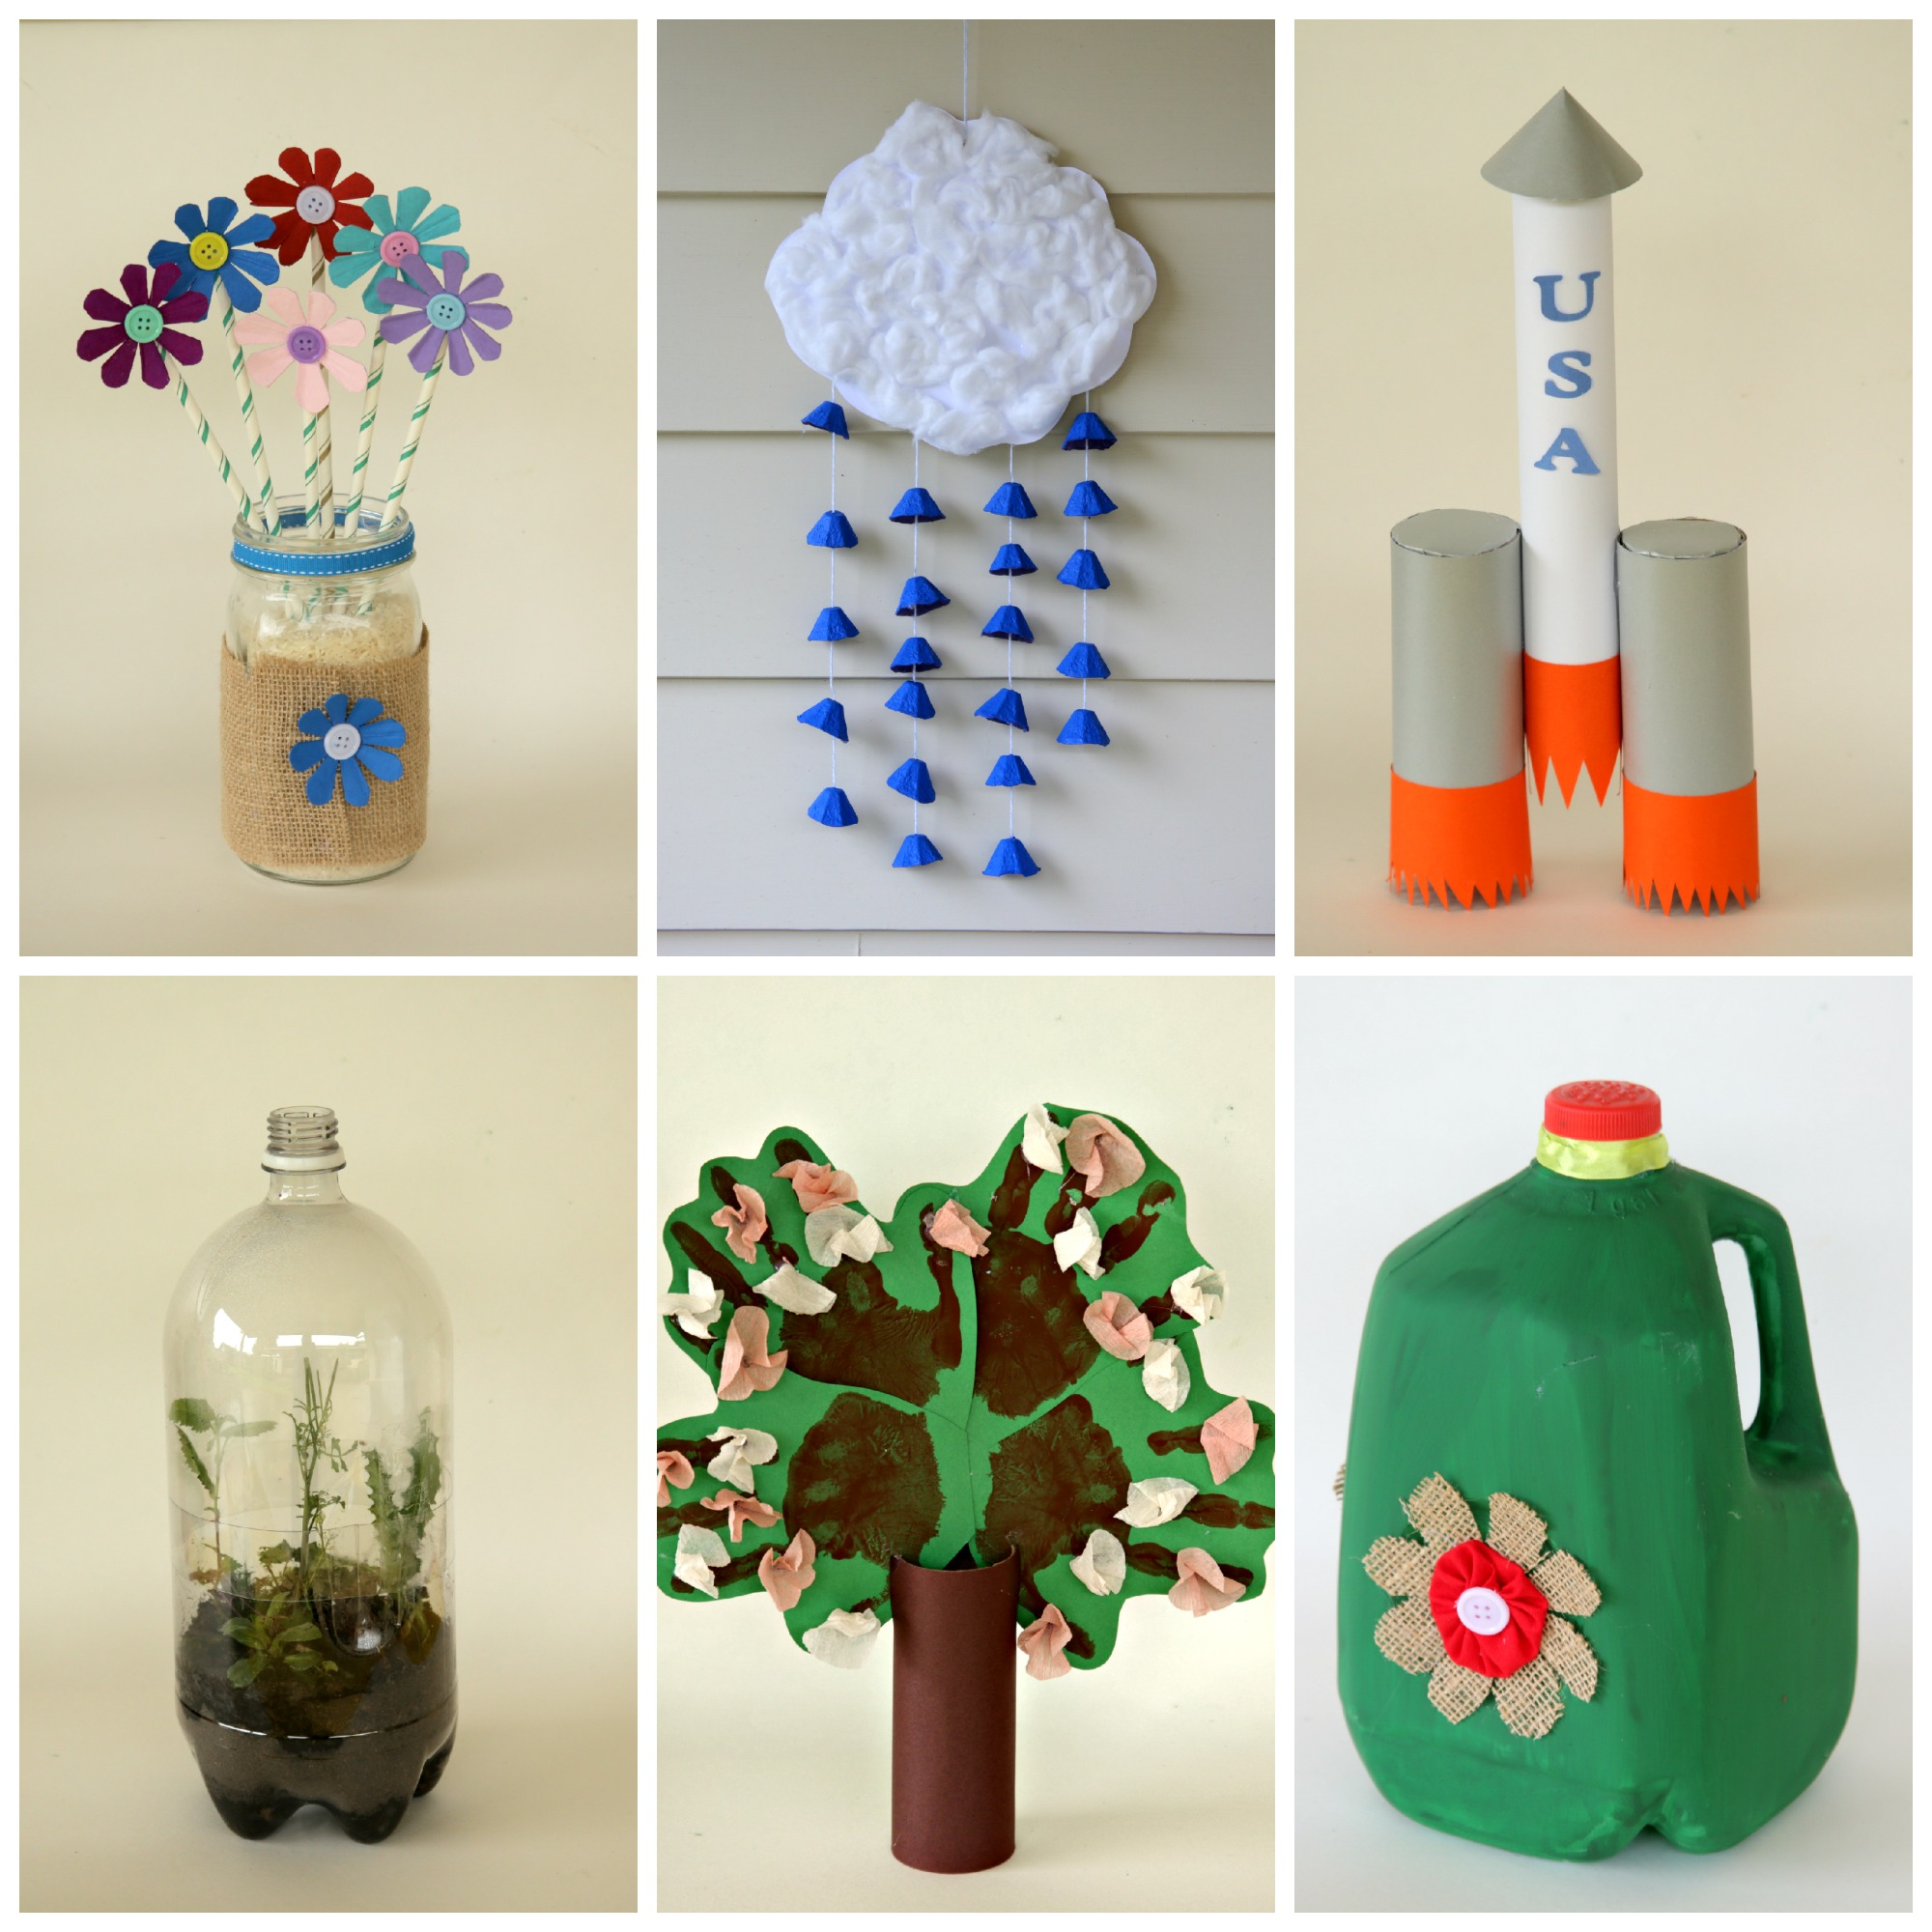 6 earth day crafts from recycled materials kix cereal for Craft using waste